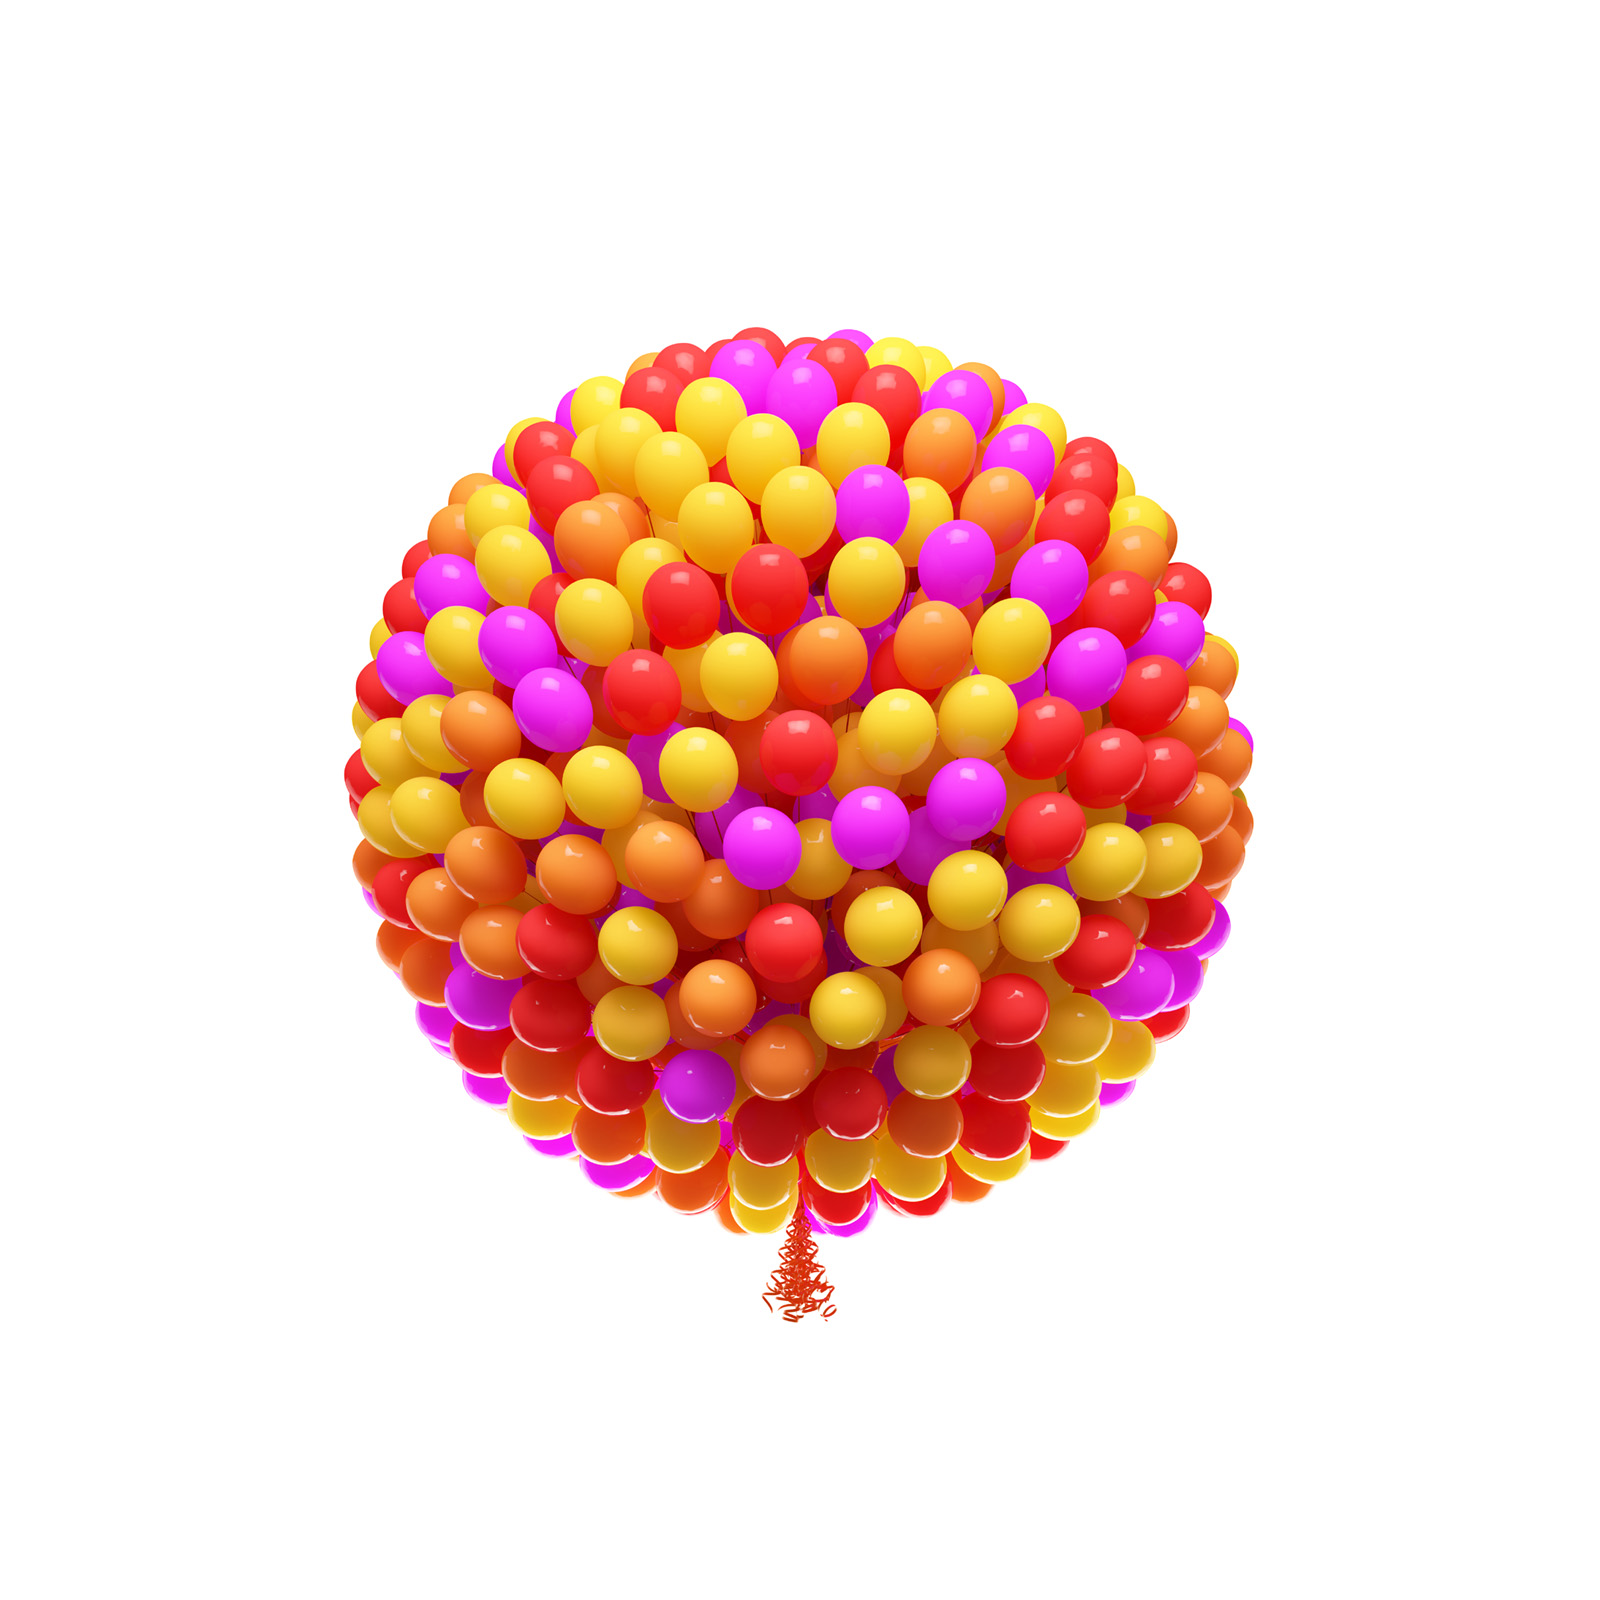 Bright circle composed of three color balloons balloon 49965